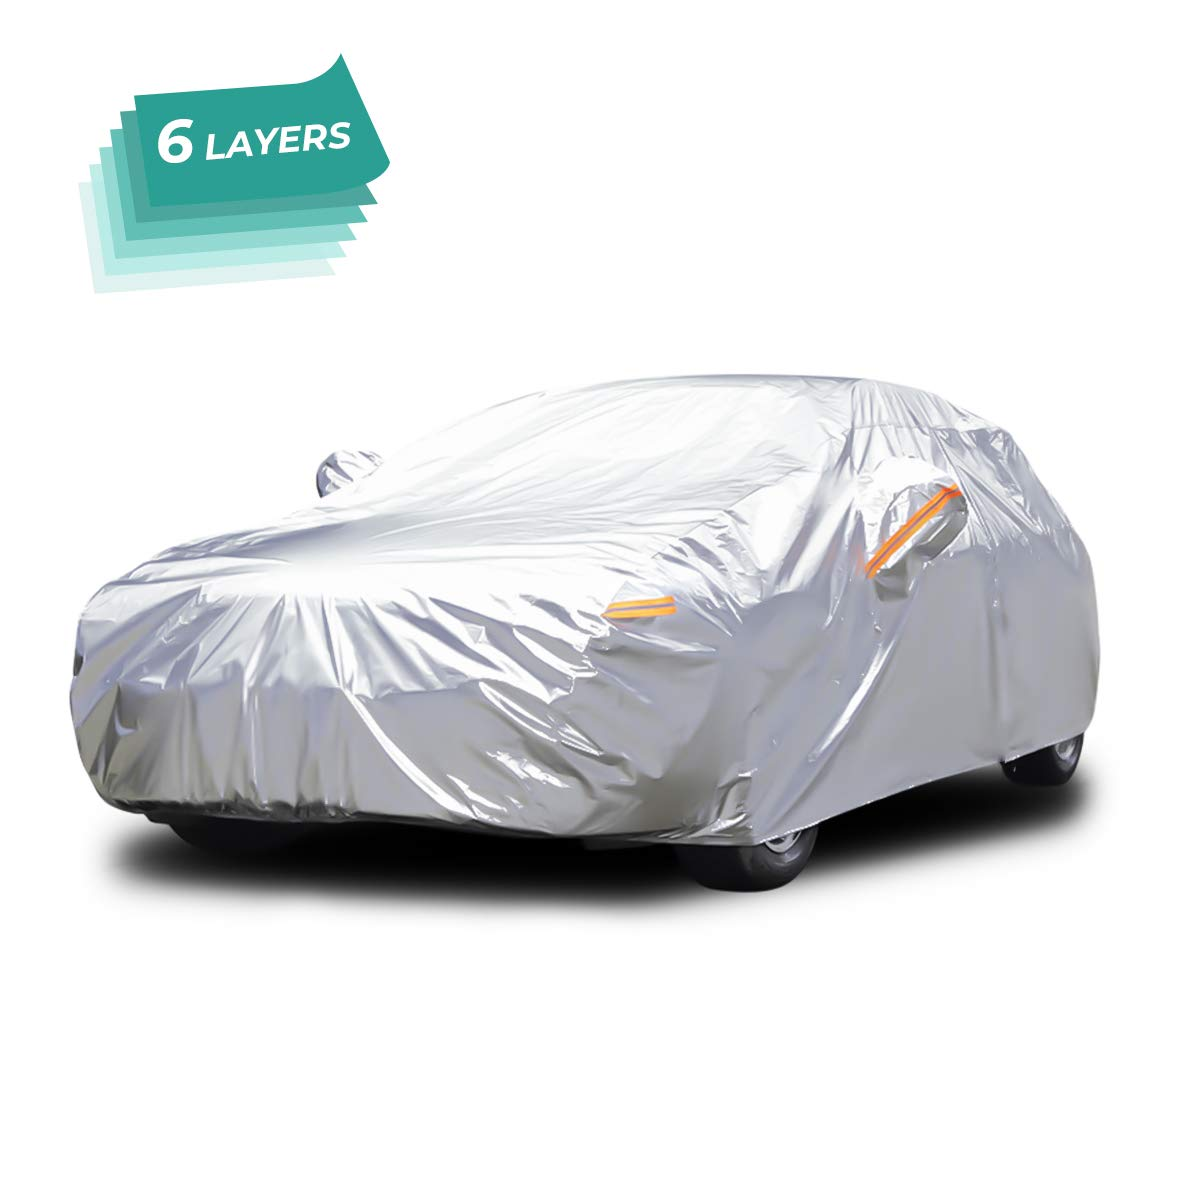 All Weather Car Cover 6 Layer Breathable UV Protection Waterproof Dustproof Universal Fit Full Car Covers